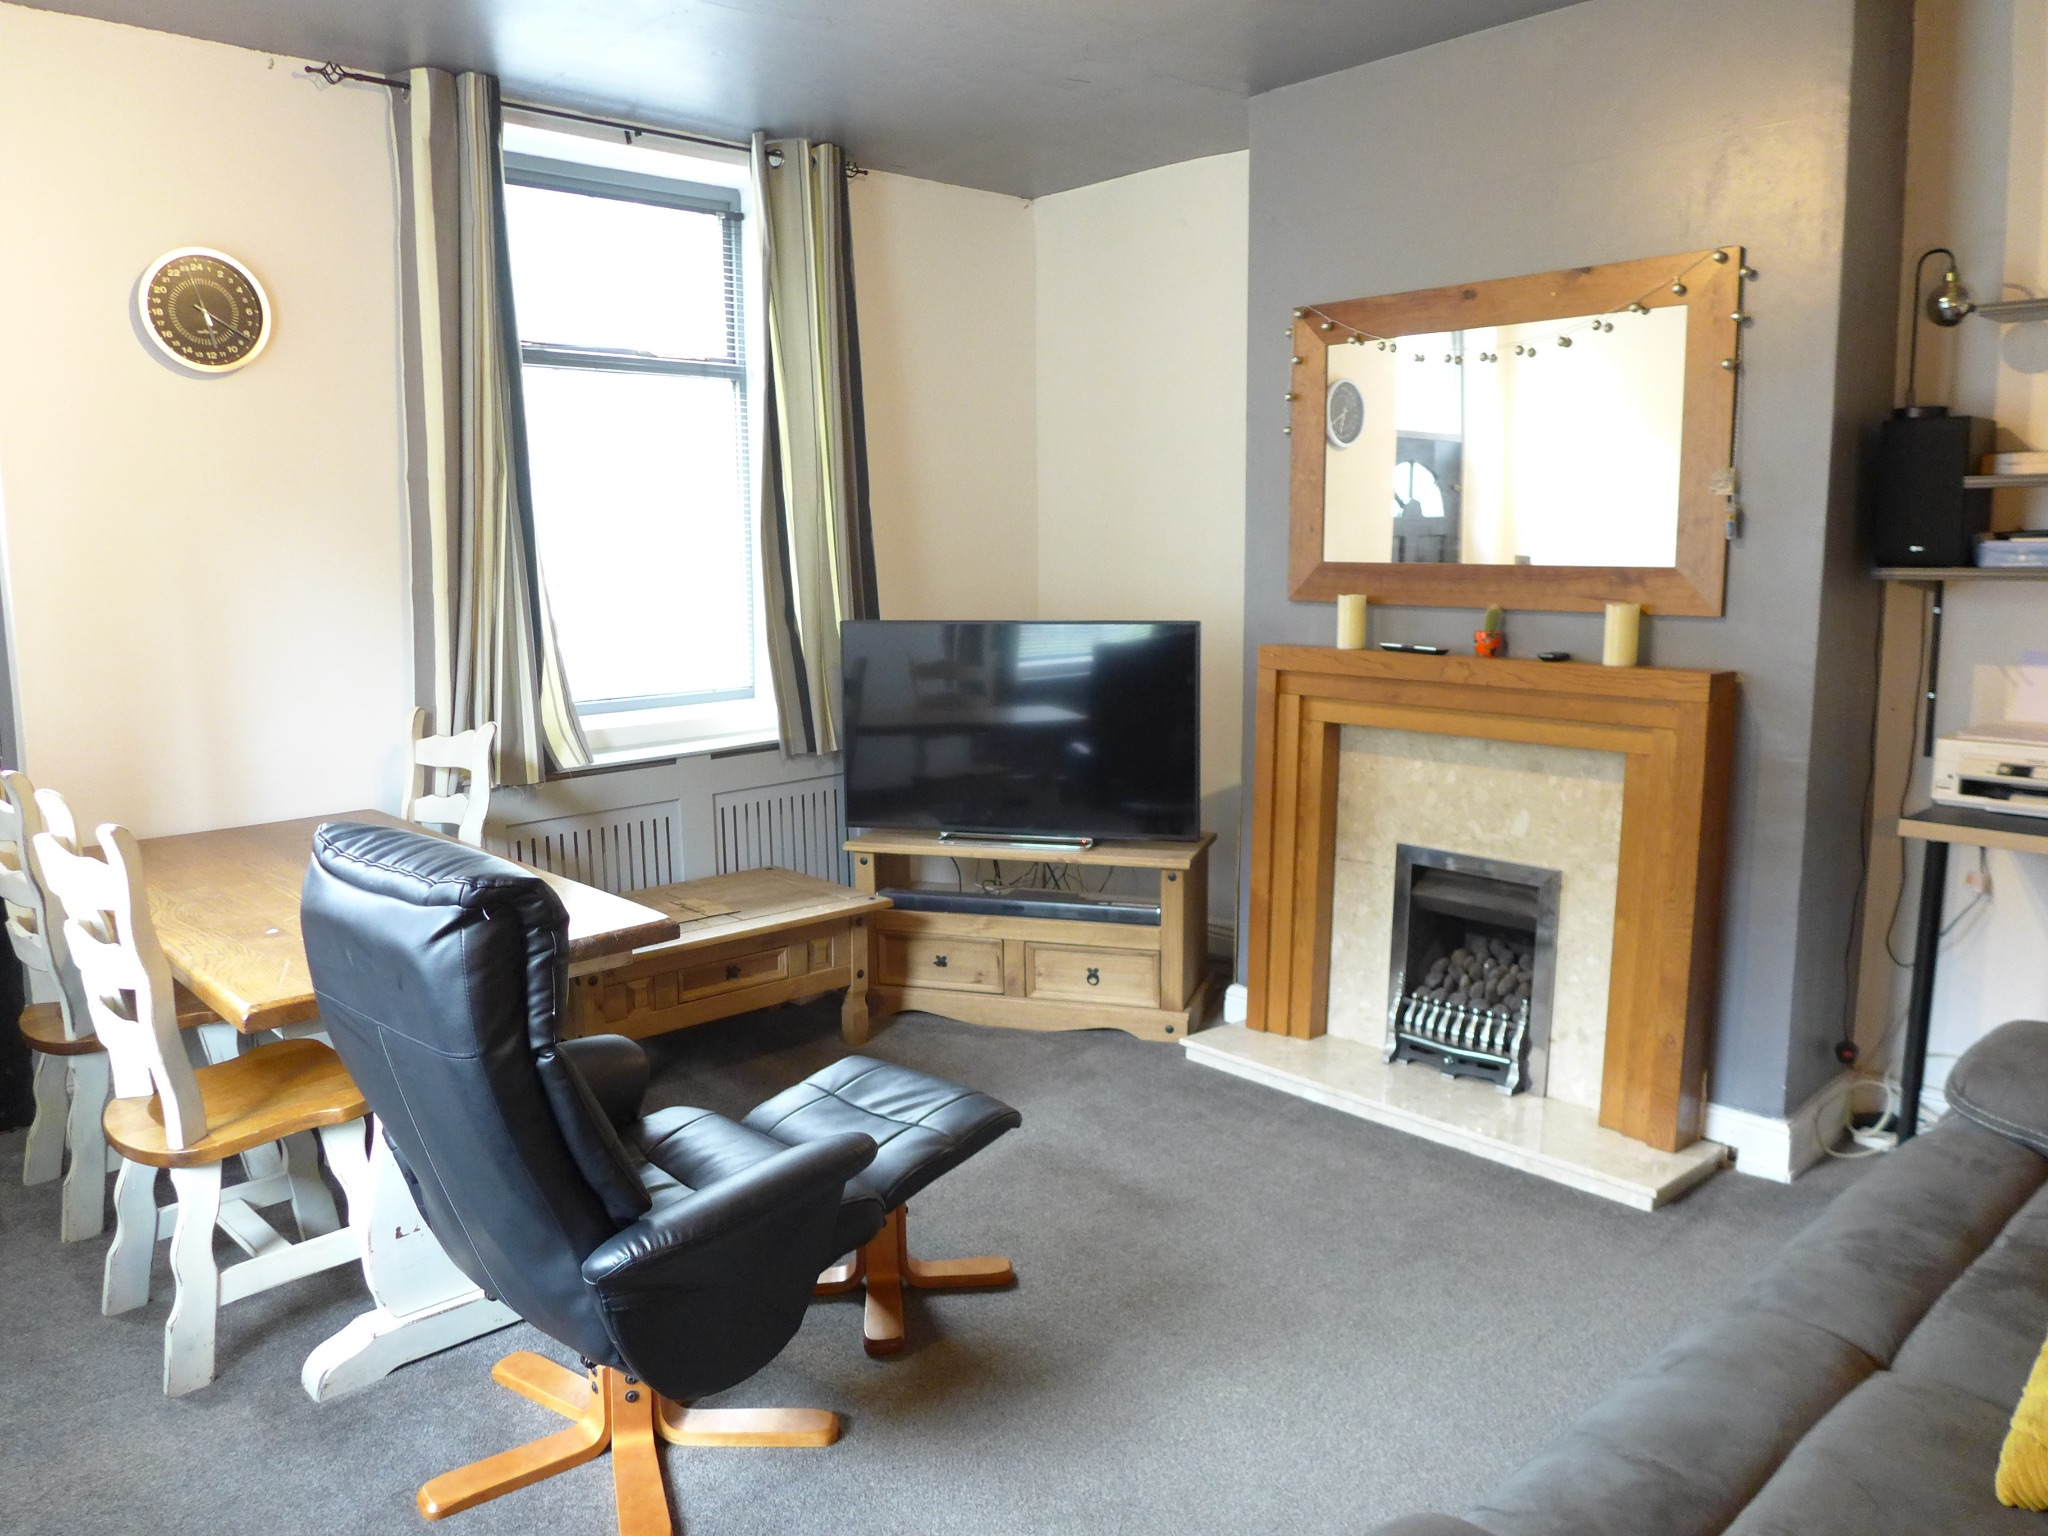 3 bedroom end terraced house For Sale in Todmorden - Photograph 3.